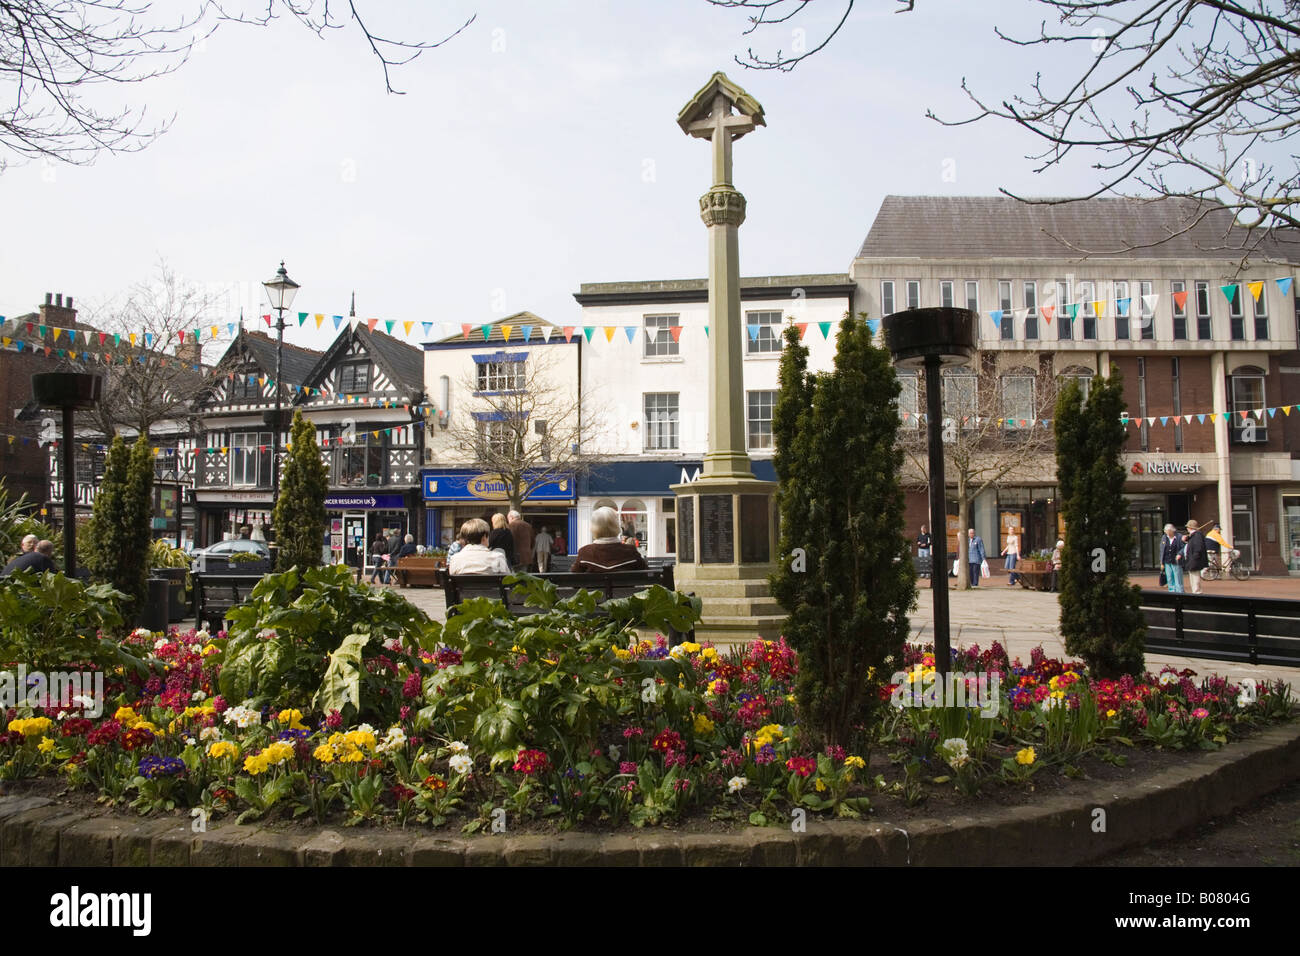 NANTWICH CHESHIRE April The War Memorial in the pedestrianised centre of this historic town with many black and - Stock Image